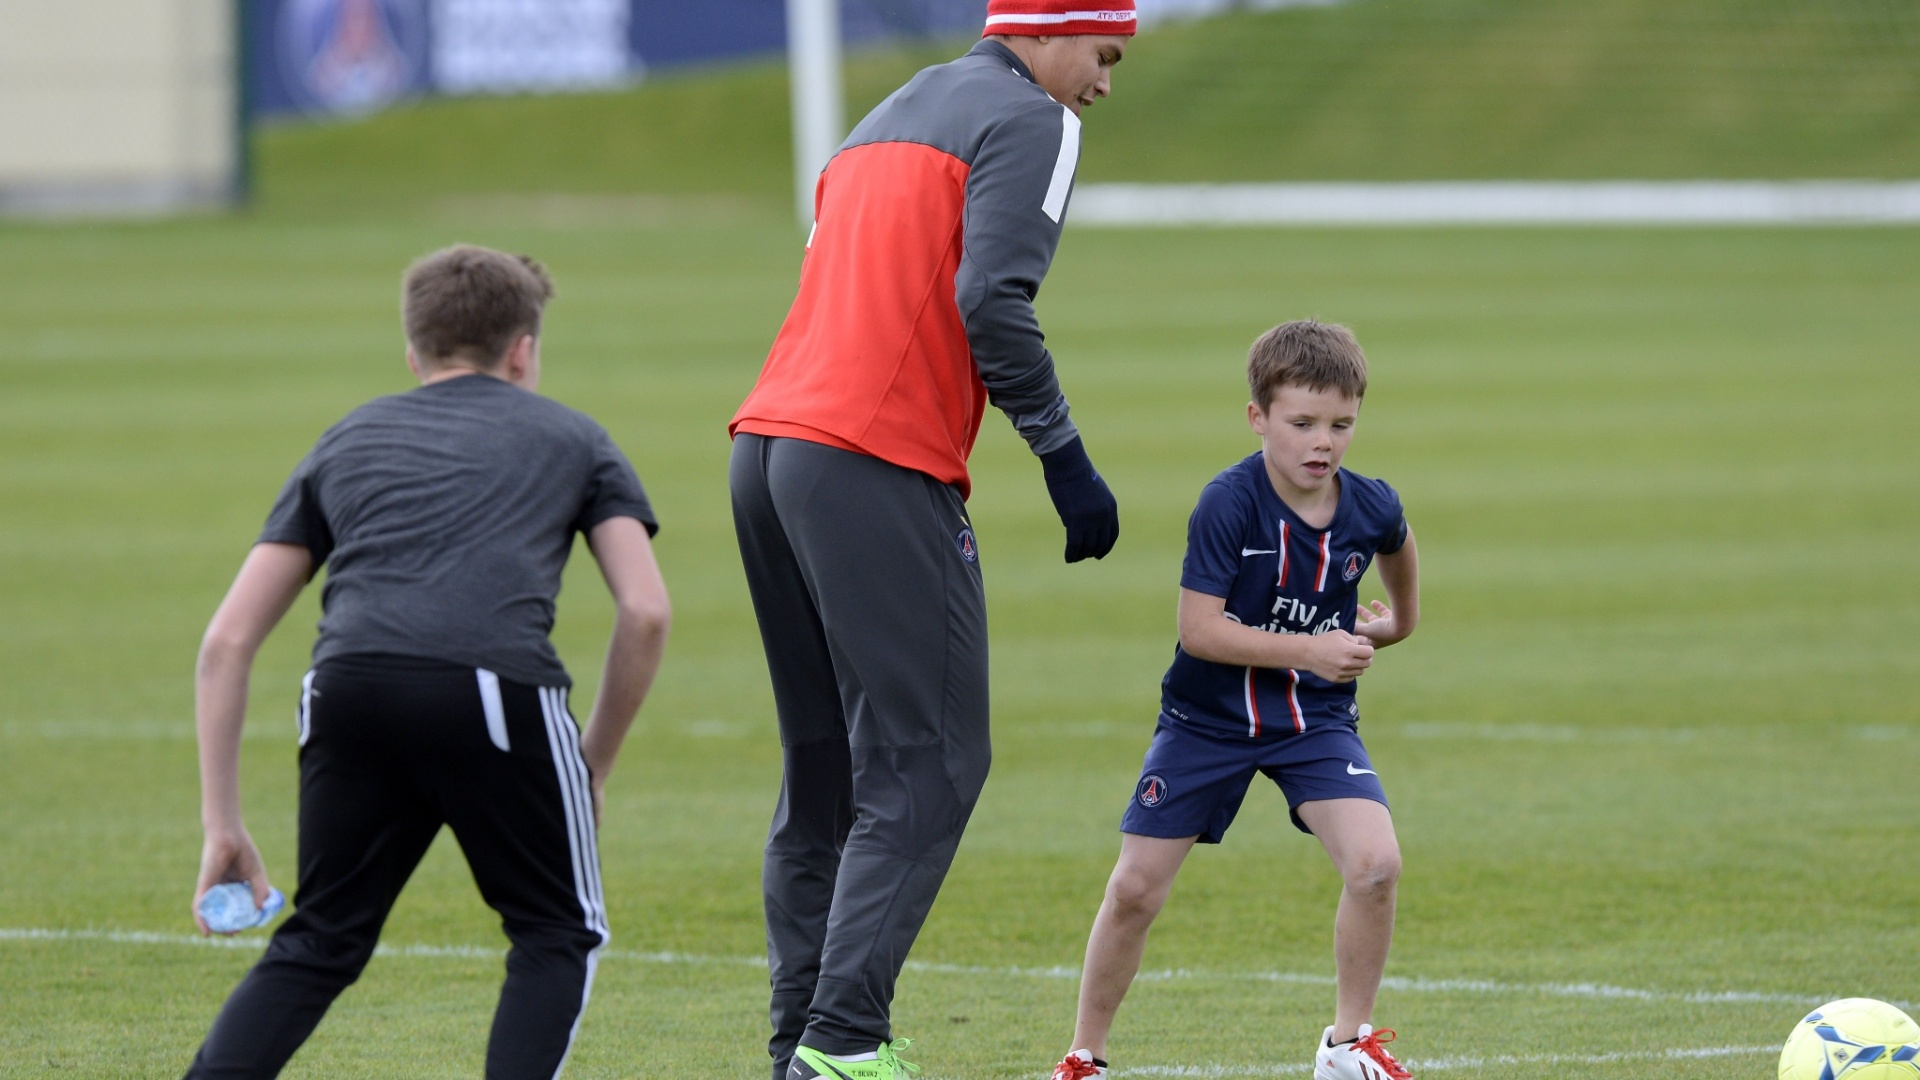 19.abr.2013 - Brooklyn Beckham (esq) e Cruz Beckham (dir), filhos do astro David Beckham, brincam com o zagueiro brasileiro Thiago Silva durante treino do Paris Saint-Germain